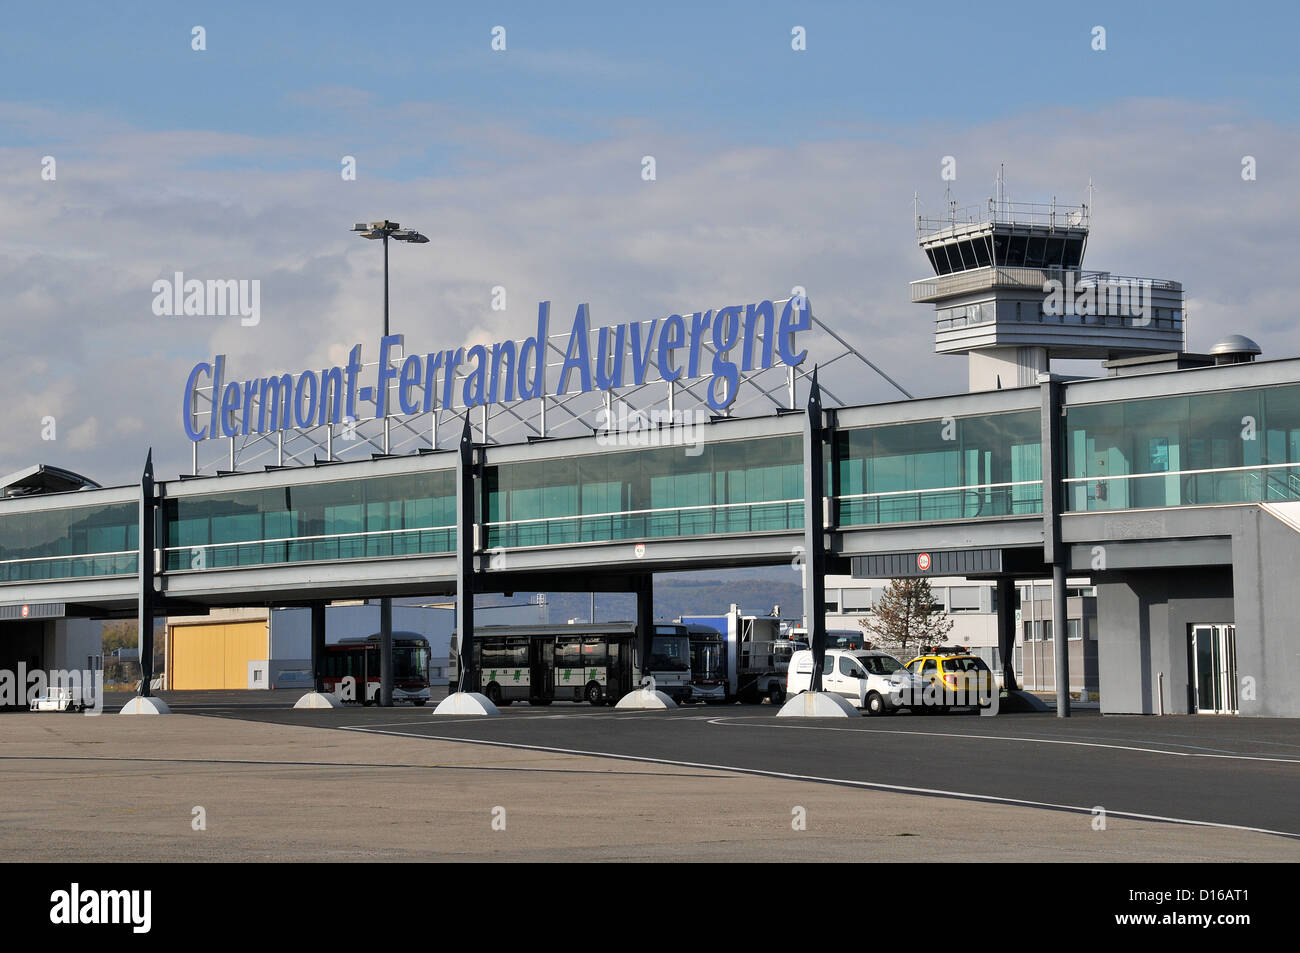 clermont ferrand auvergne airport stock photo 52385985 alamy. Black Bedroom Furniture Sets. Home Design Ideas